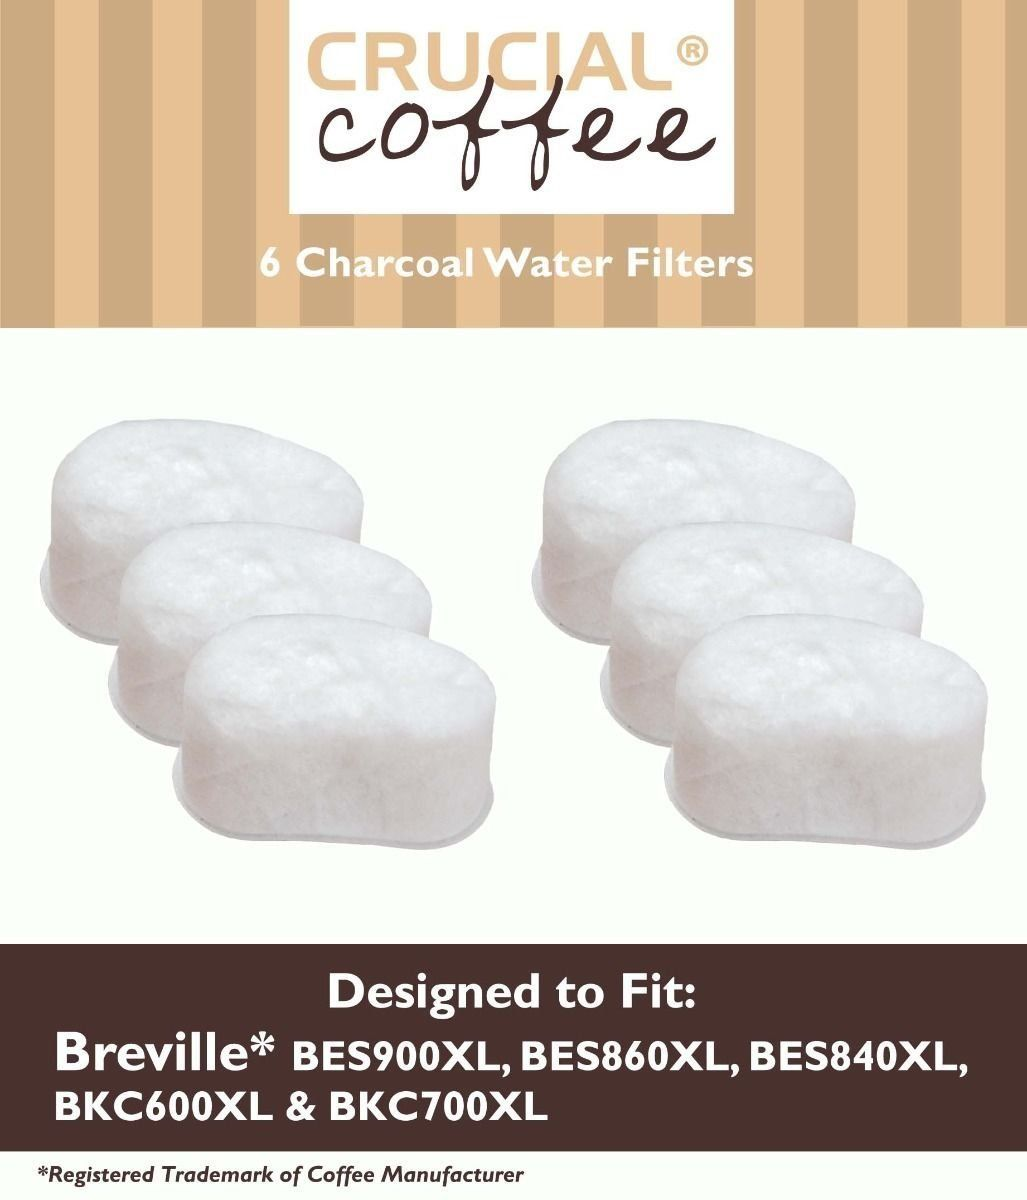 Breville Charcoal Water Filters High Quality 6 Pcs Pack